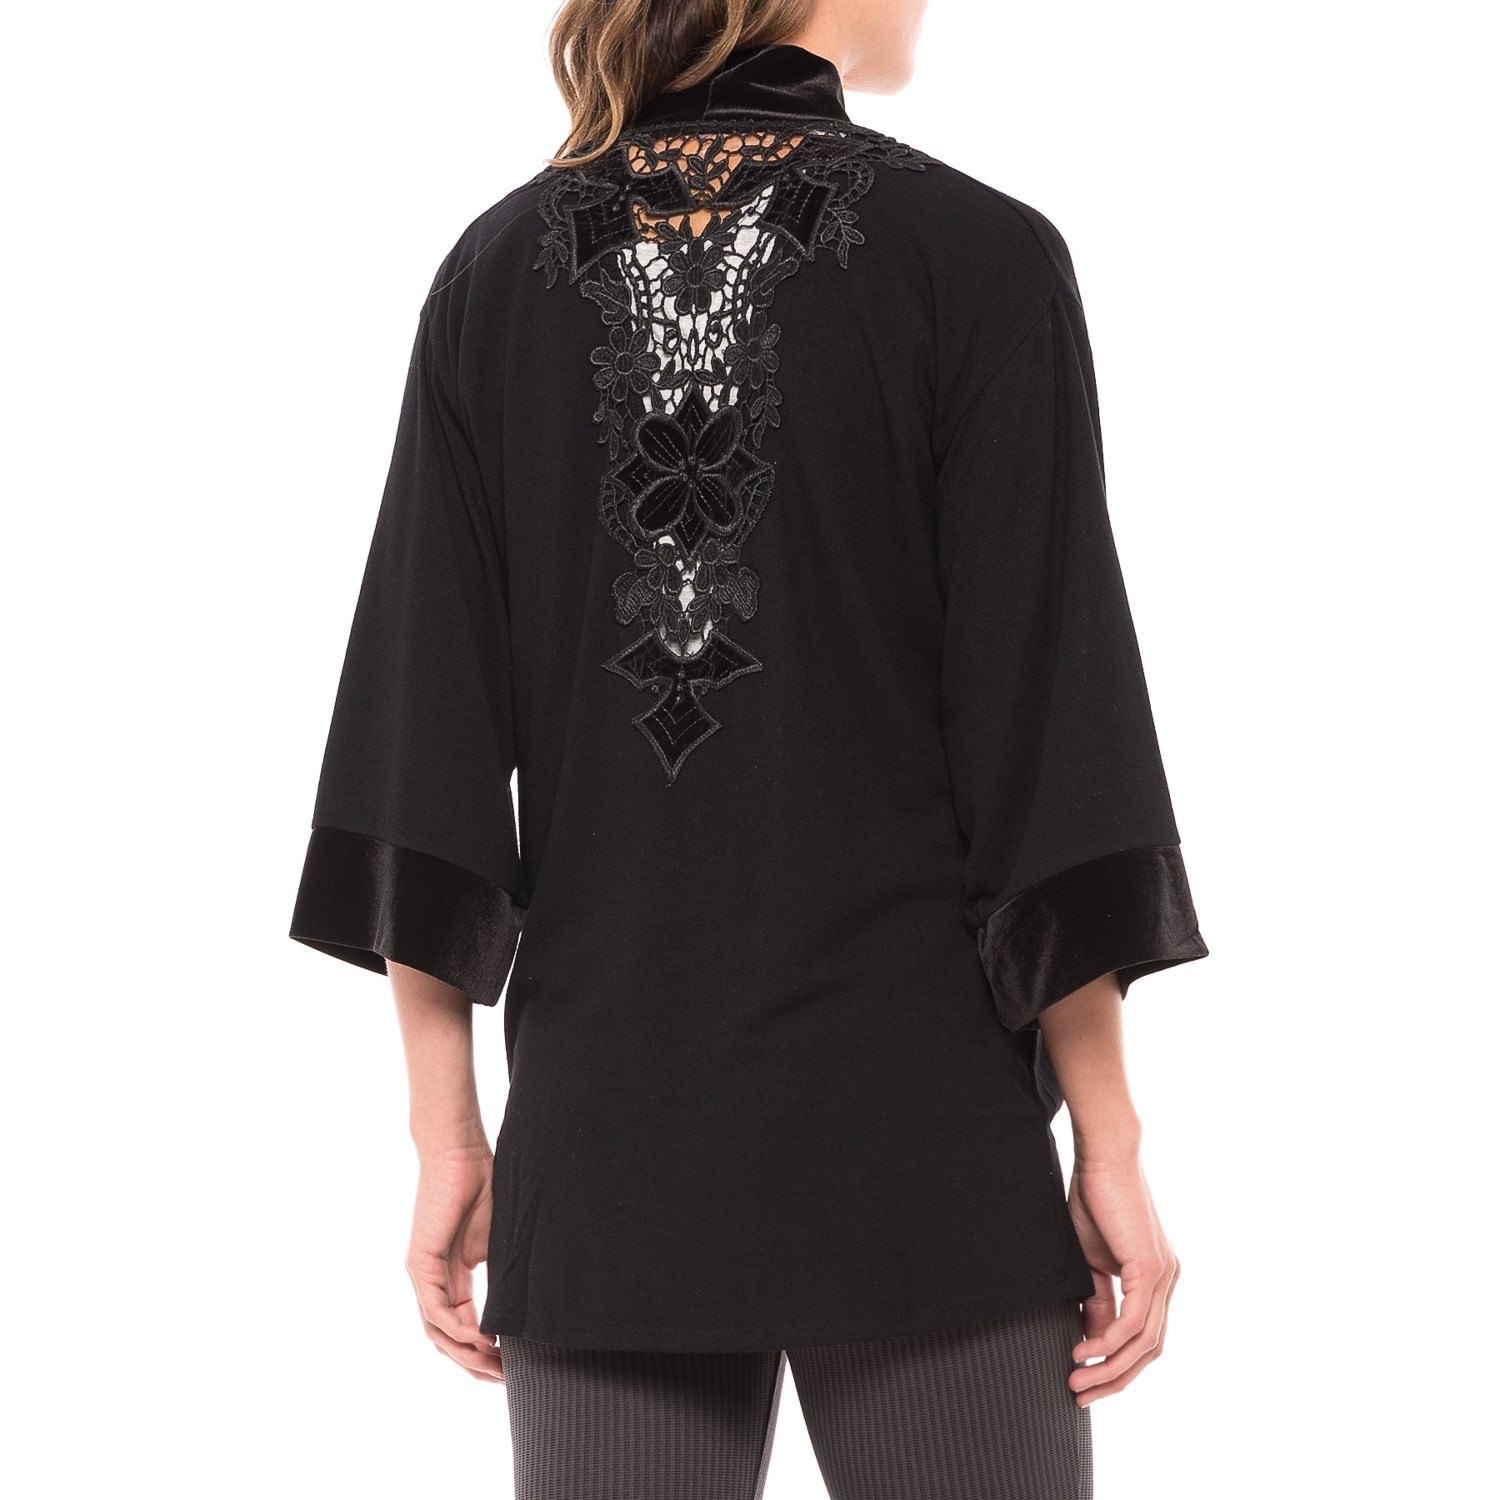 August Silk Lace-Back Cardigan Shirt (For Women)